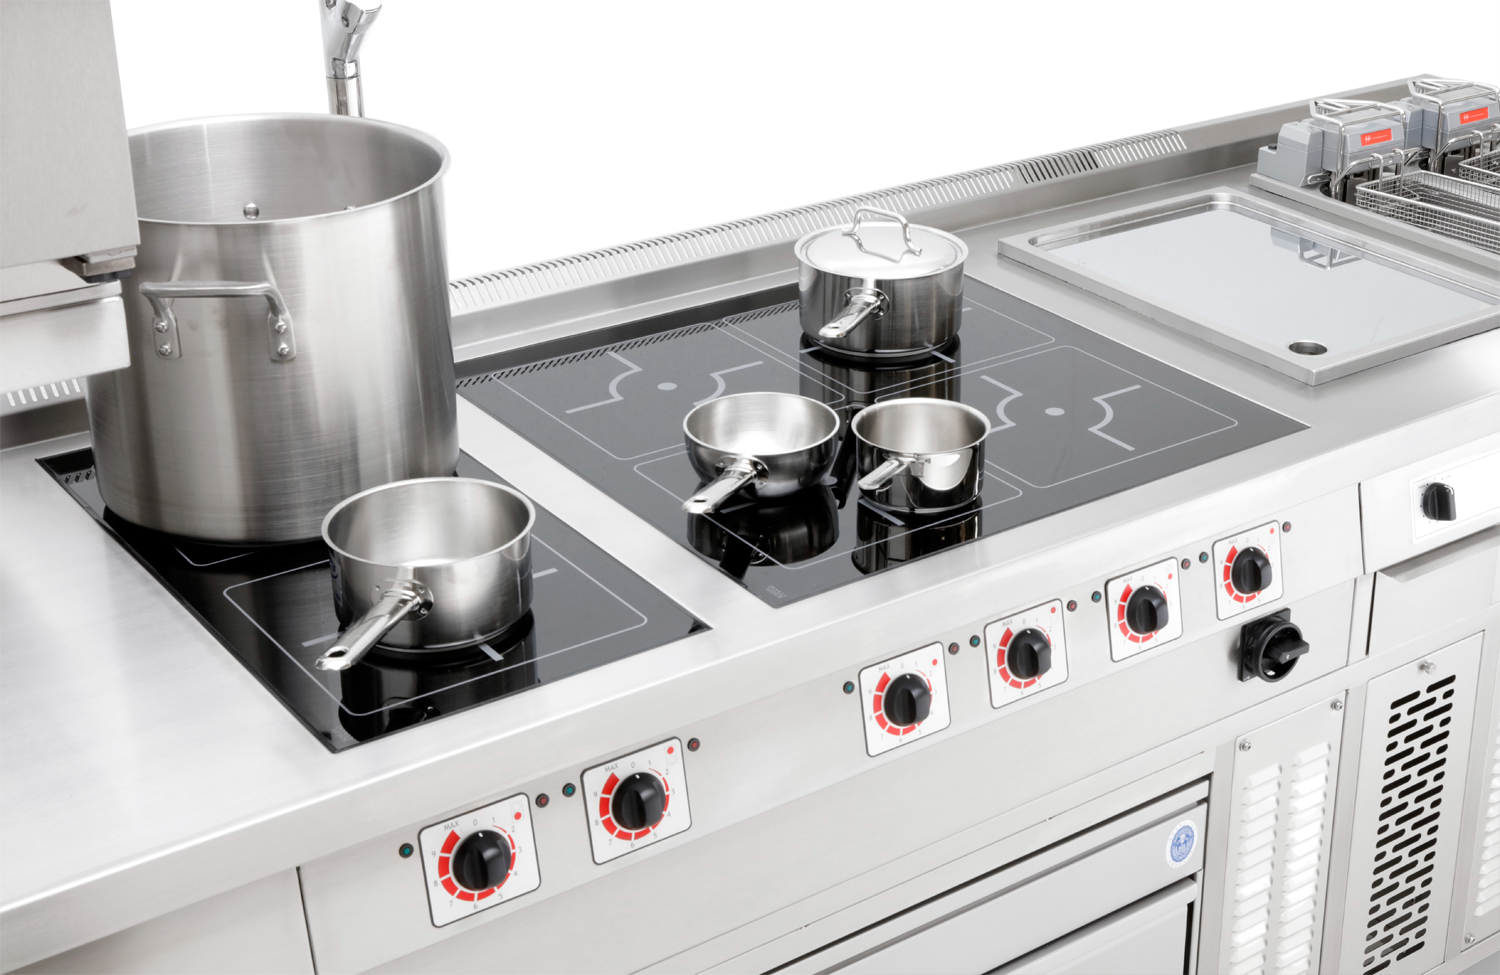 Commercial Induction Ranges - Standard and bespoke quality commercial induction range cookers designed and manufactured in the UK at Target's factory based in Gloucester.